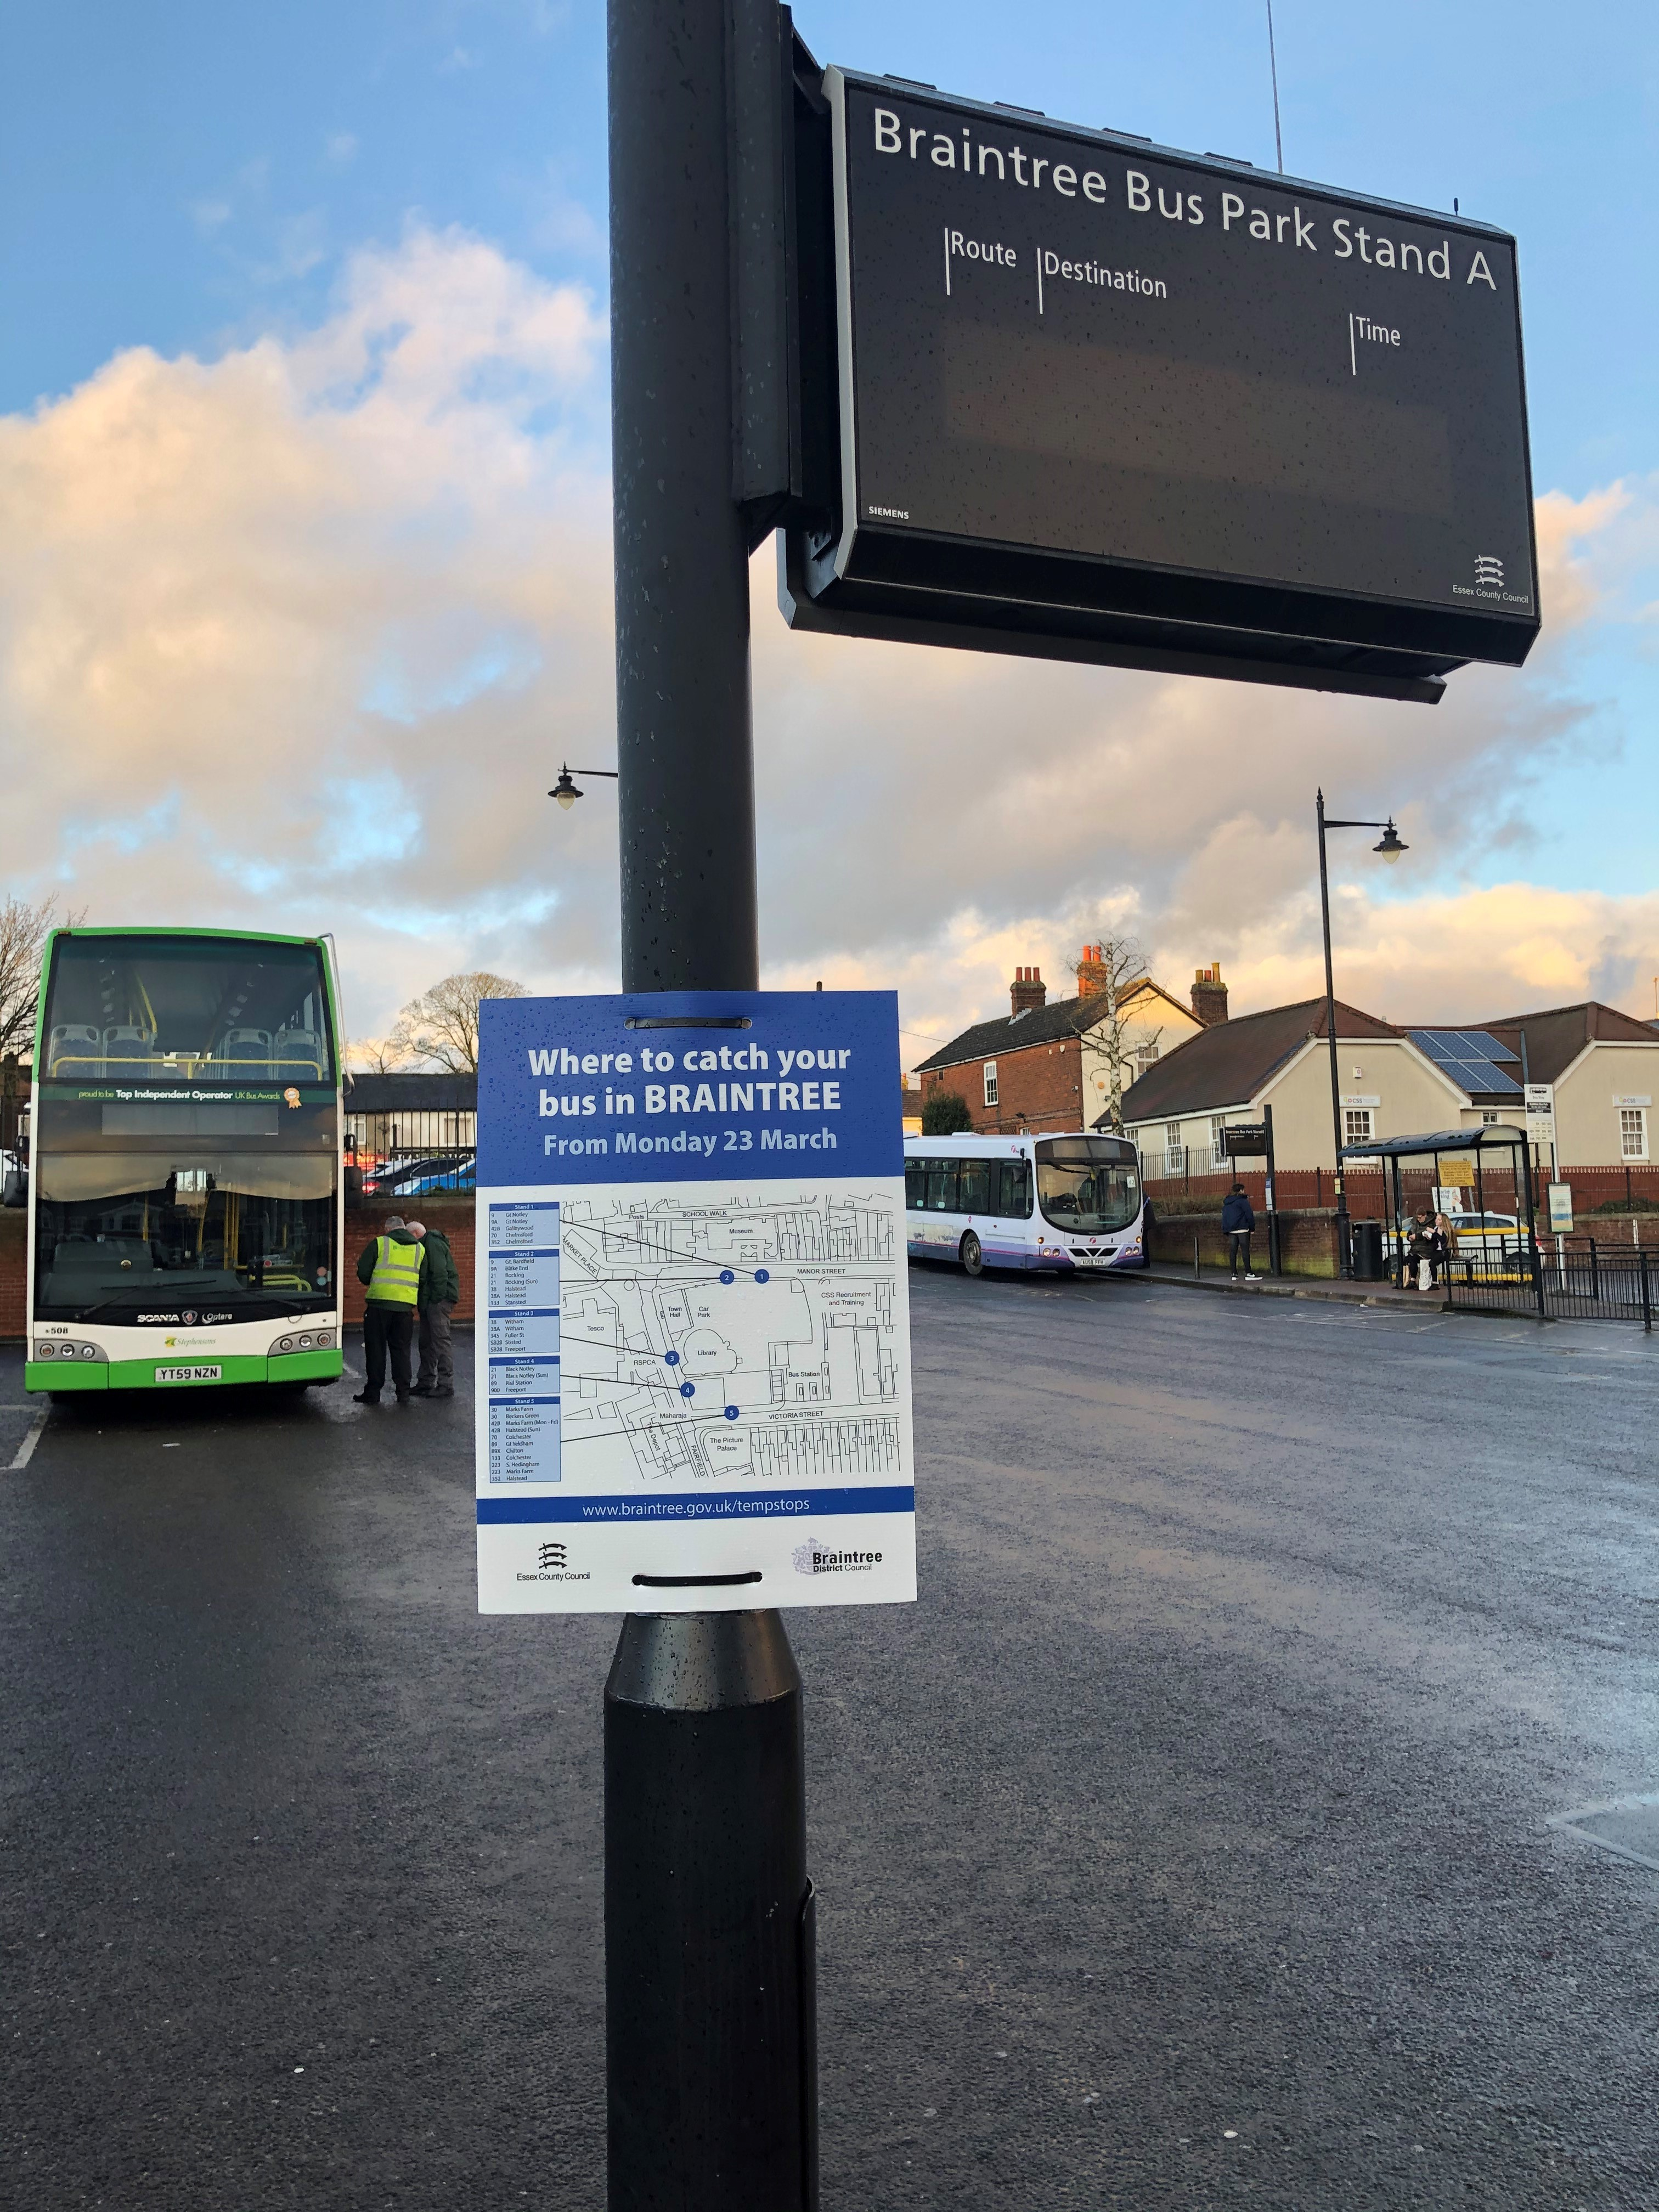 Braintree bus park closure and alternative temporary bus stops